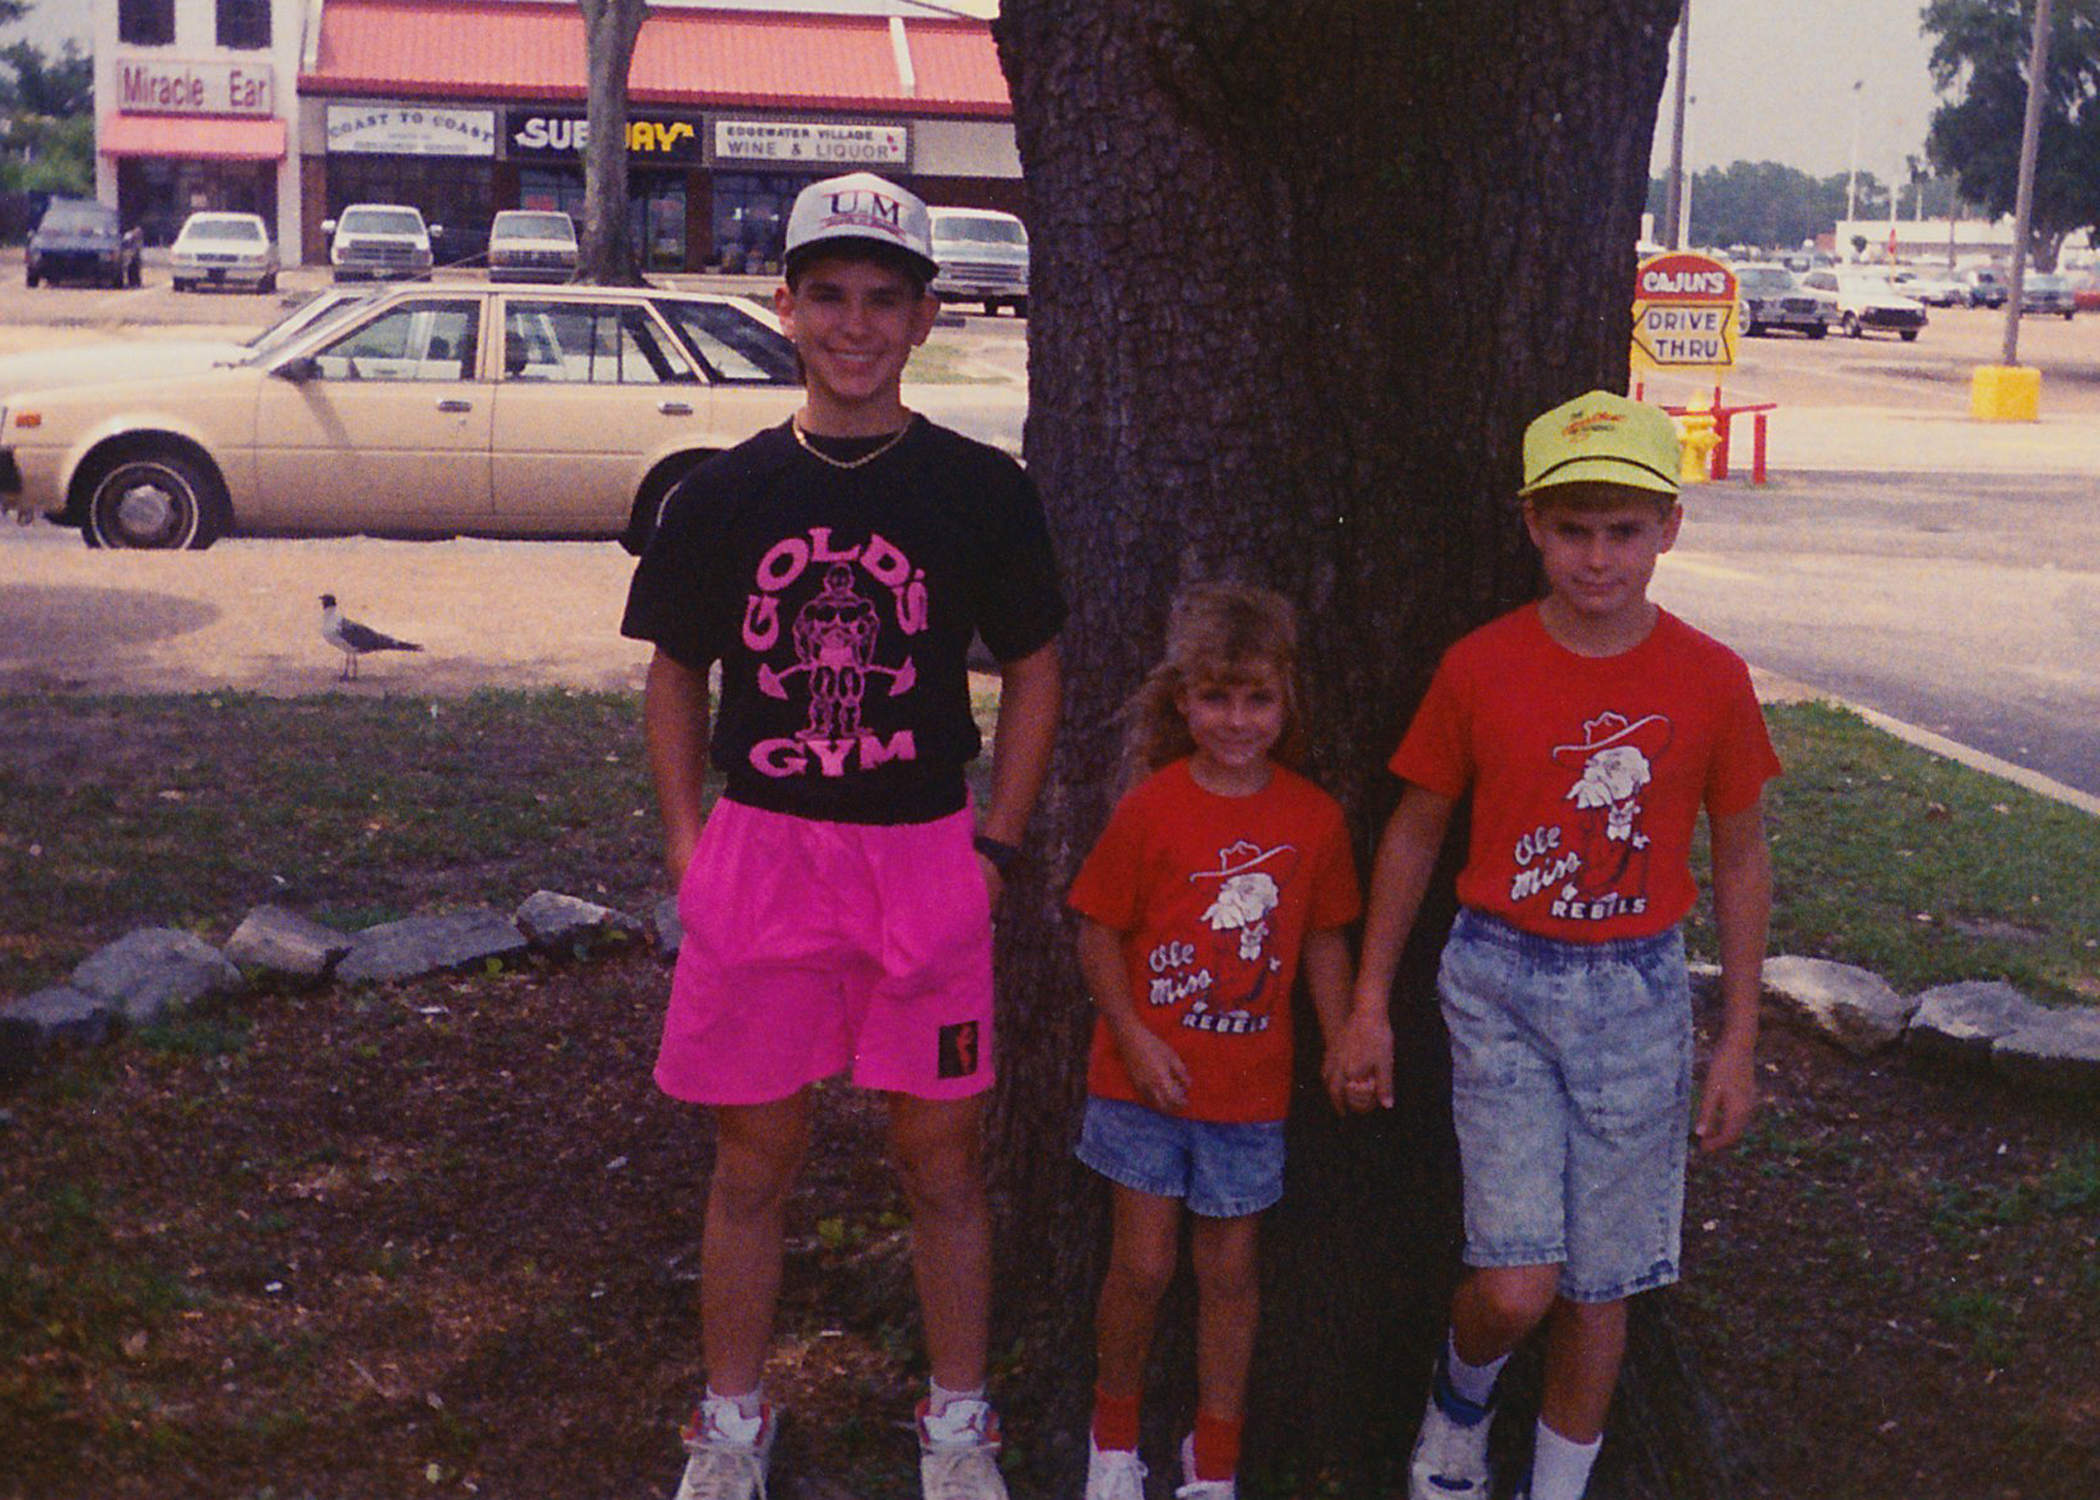 Jonathan and his sister Julie in matching Ole Miss shirts with their cousin Michael.